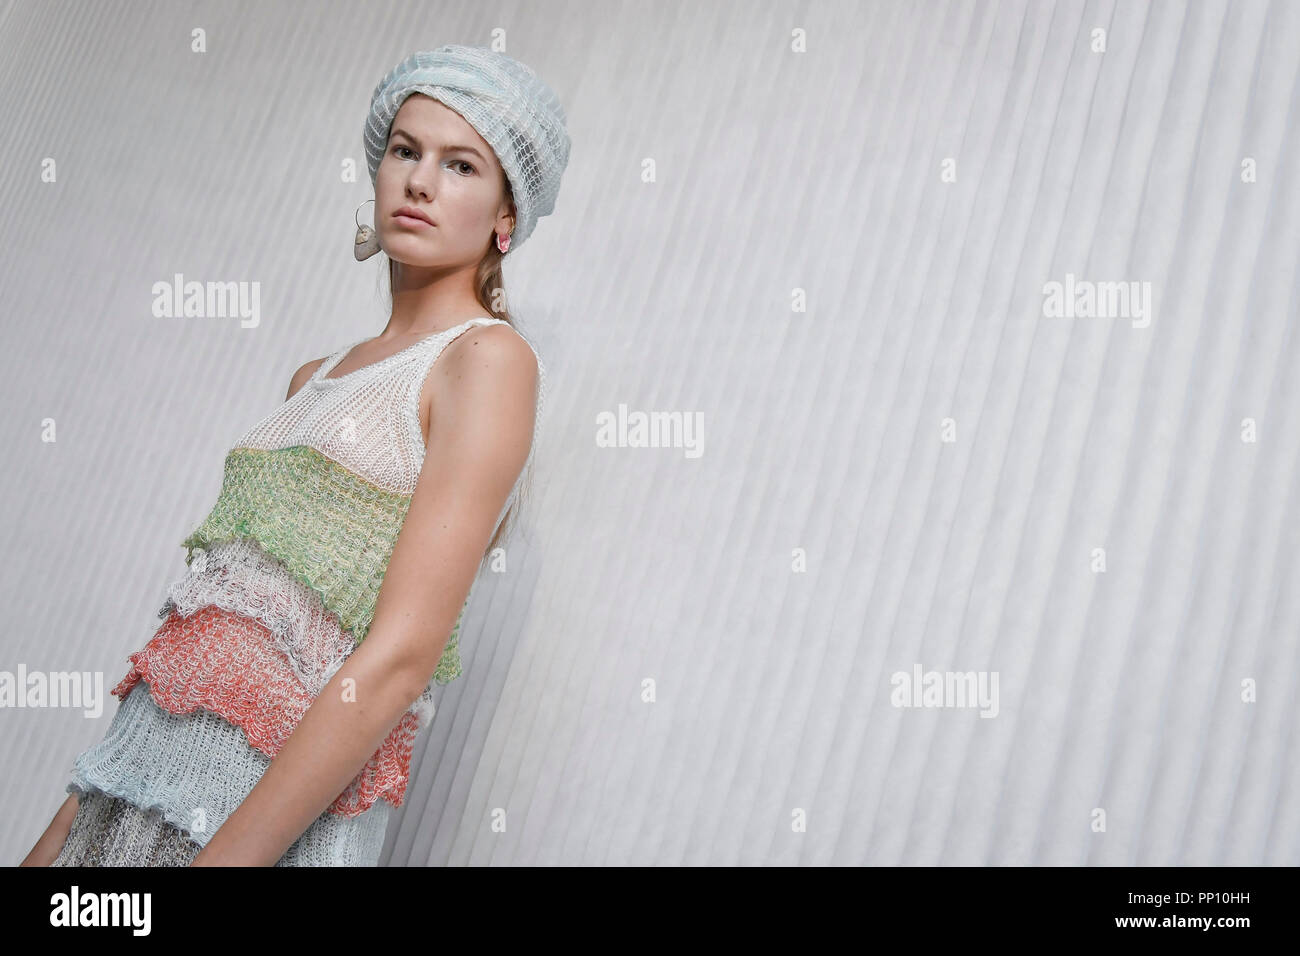 505ff26a45c3 Milan Fashion Week Fashion Woman Spring Summer 2019. Missoni First Look In  Photo: model Credit: Independent Photo Agency/Alamy Live News